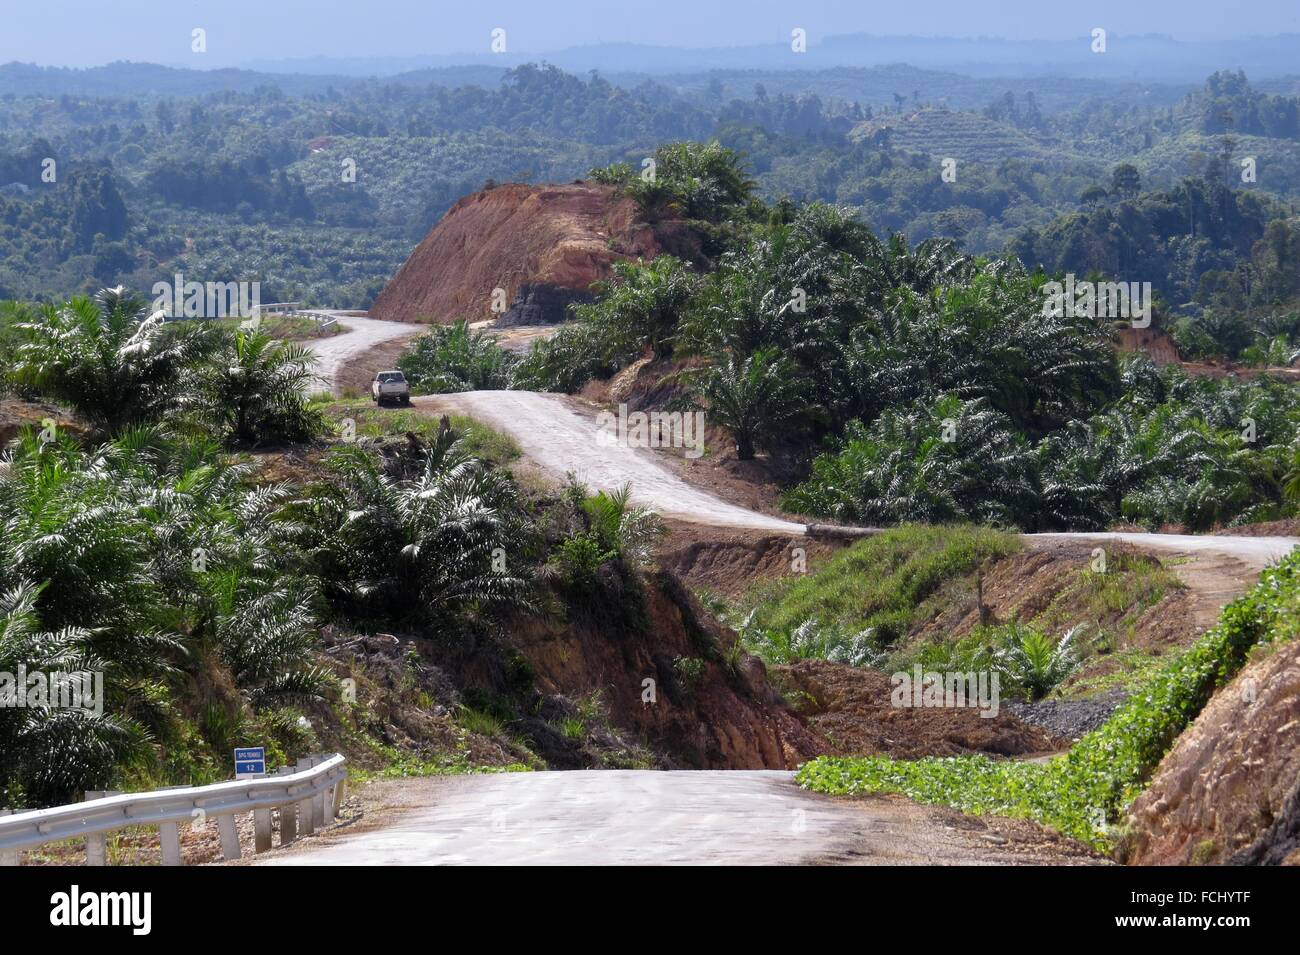 miri marudibaram oil palm estate road sarawak malaysia FCHYTF - what do you know about palm